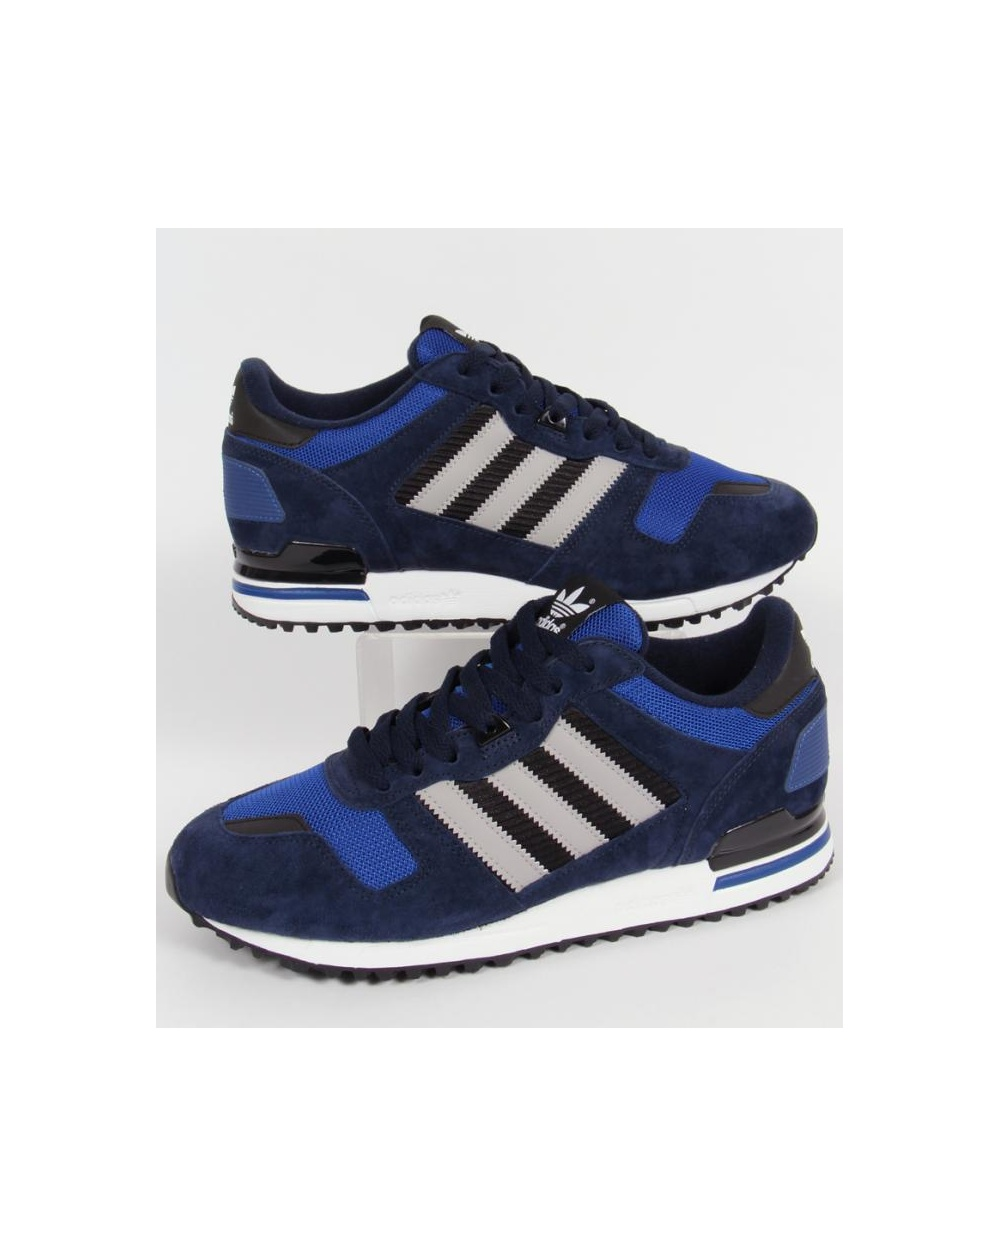 best price pick up factory authentic Buy cheap Online - adidas originals zx 700 trainers,Fine ...